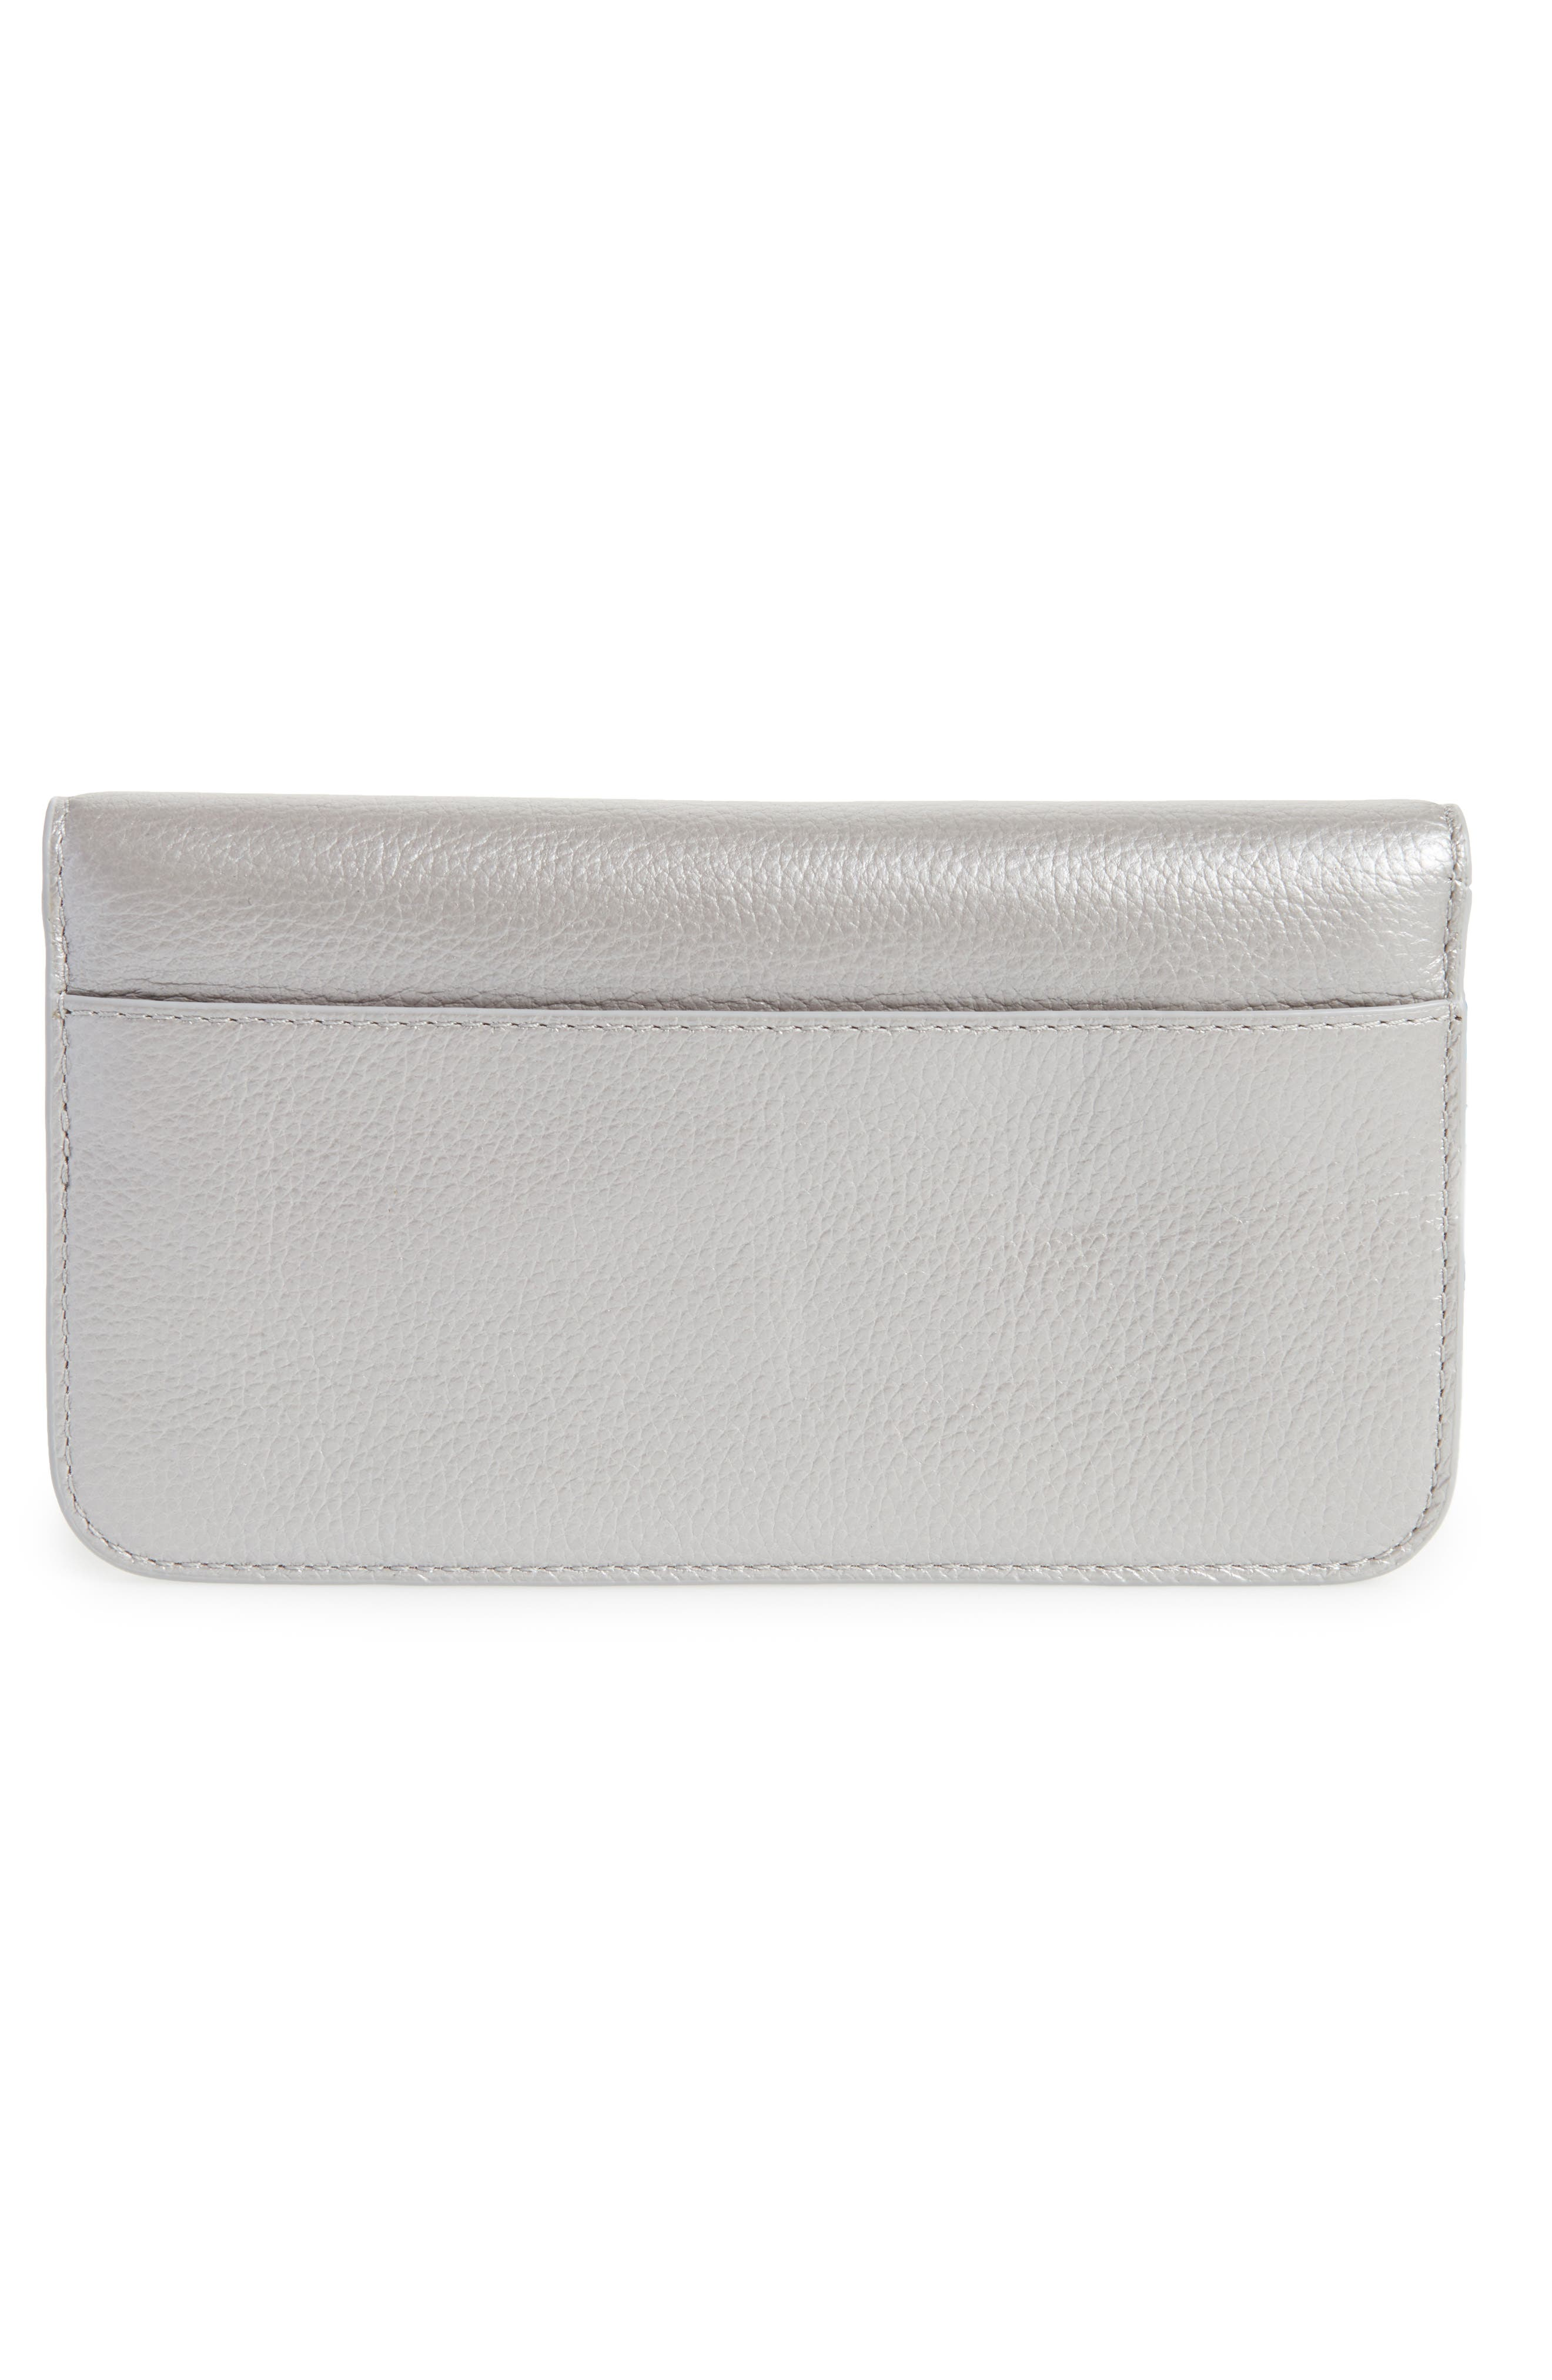 Greenwood Bristol Leather Wristlet,                             Alternate thumbnail 4, color,                             Silver